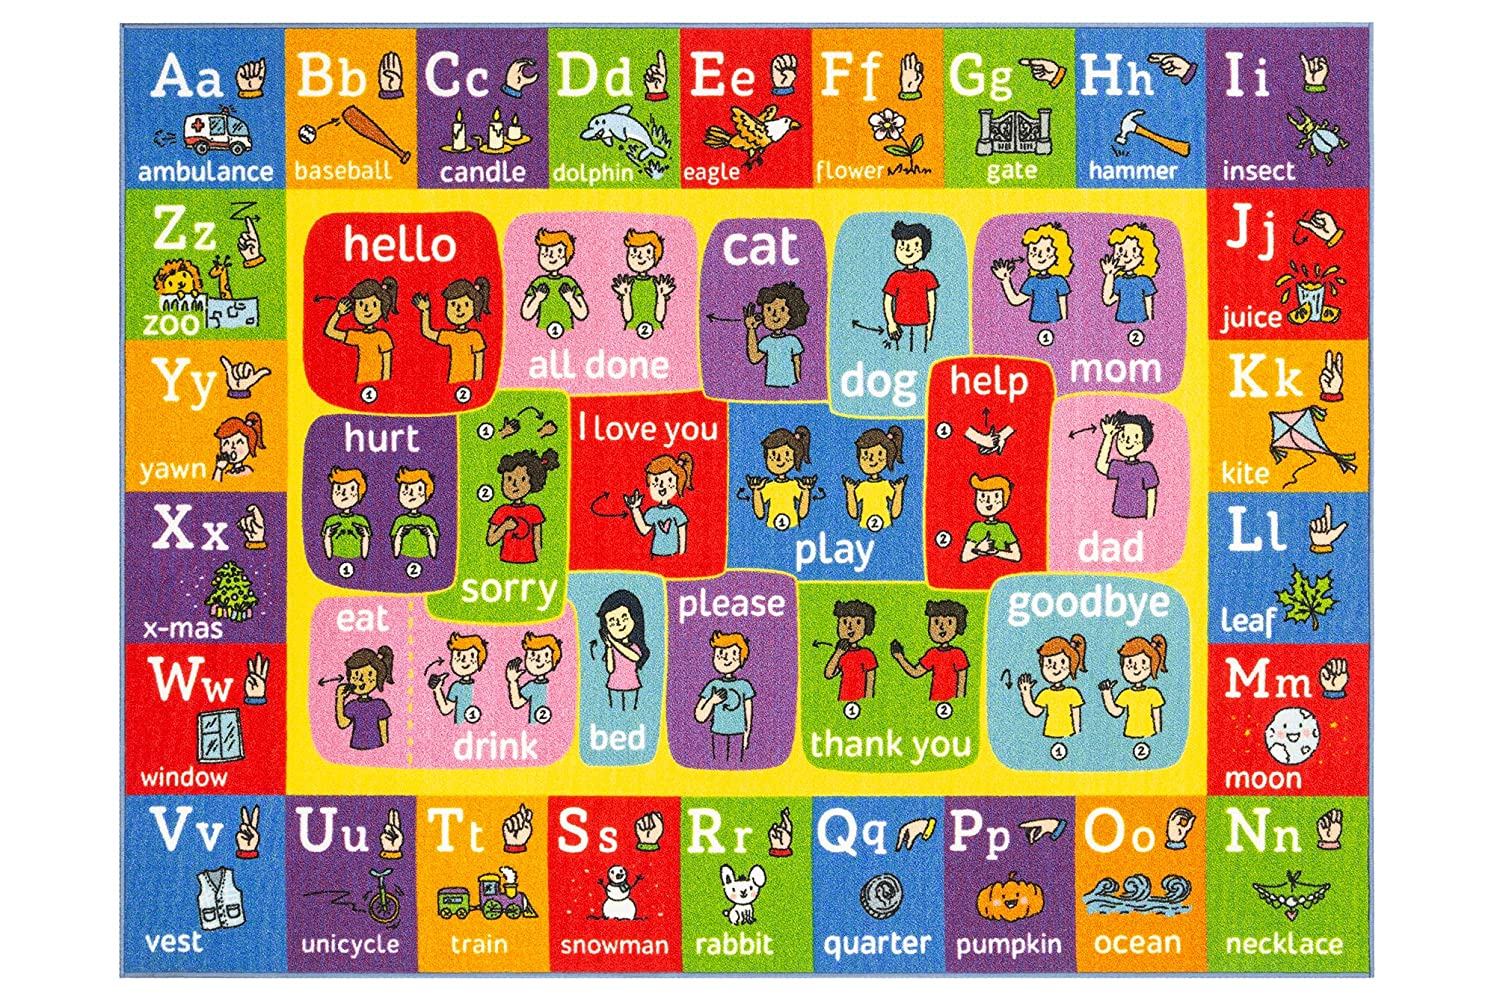 Colorful rug with the ASL alphabet in graphics.